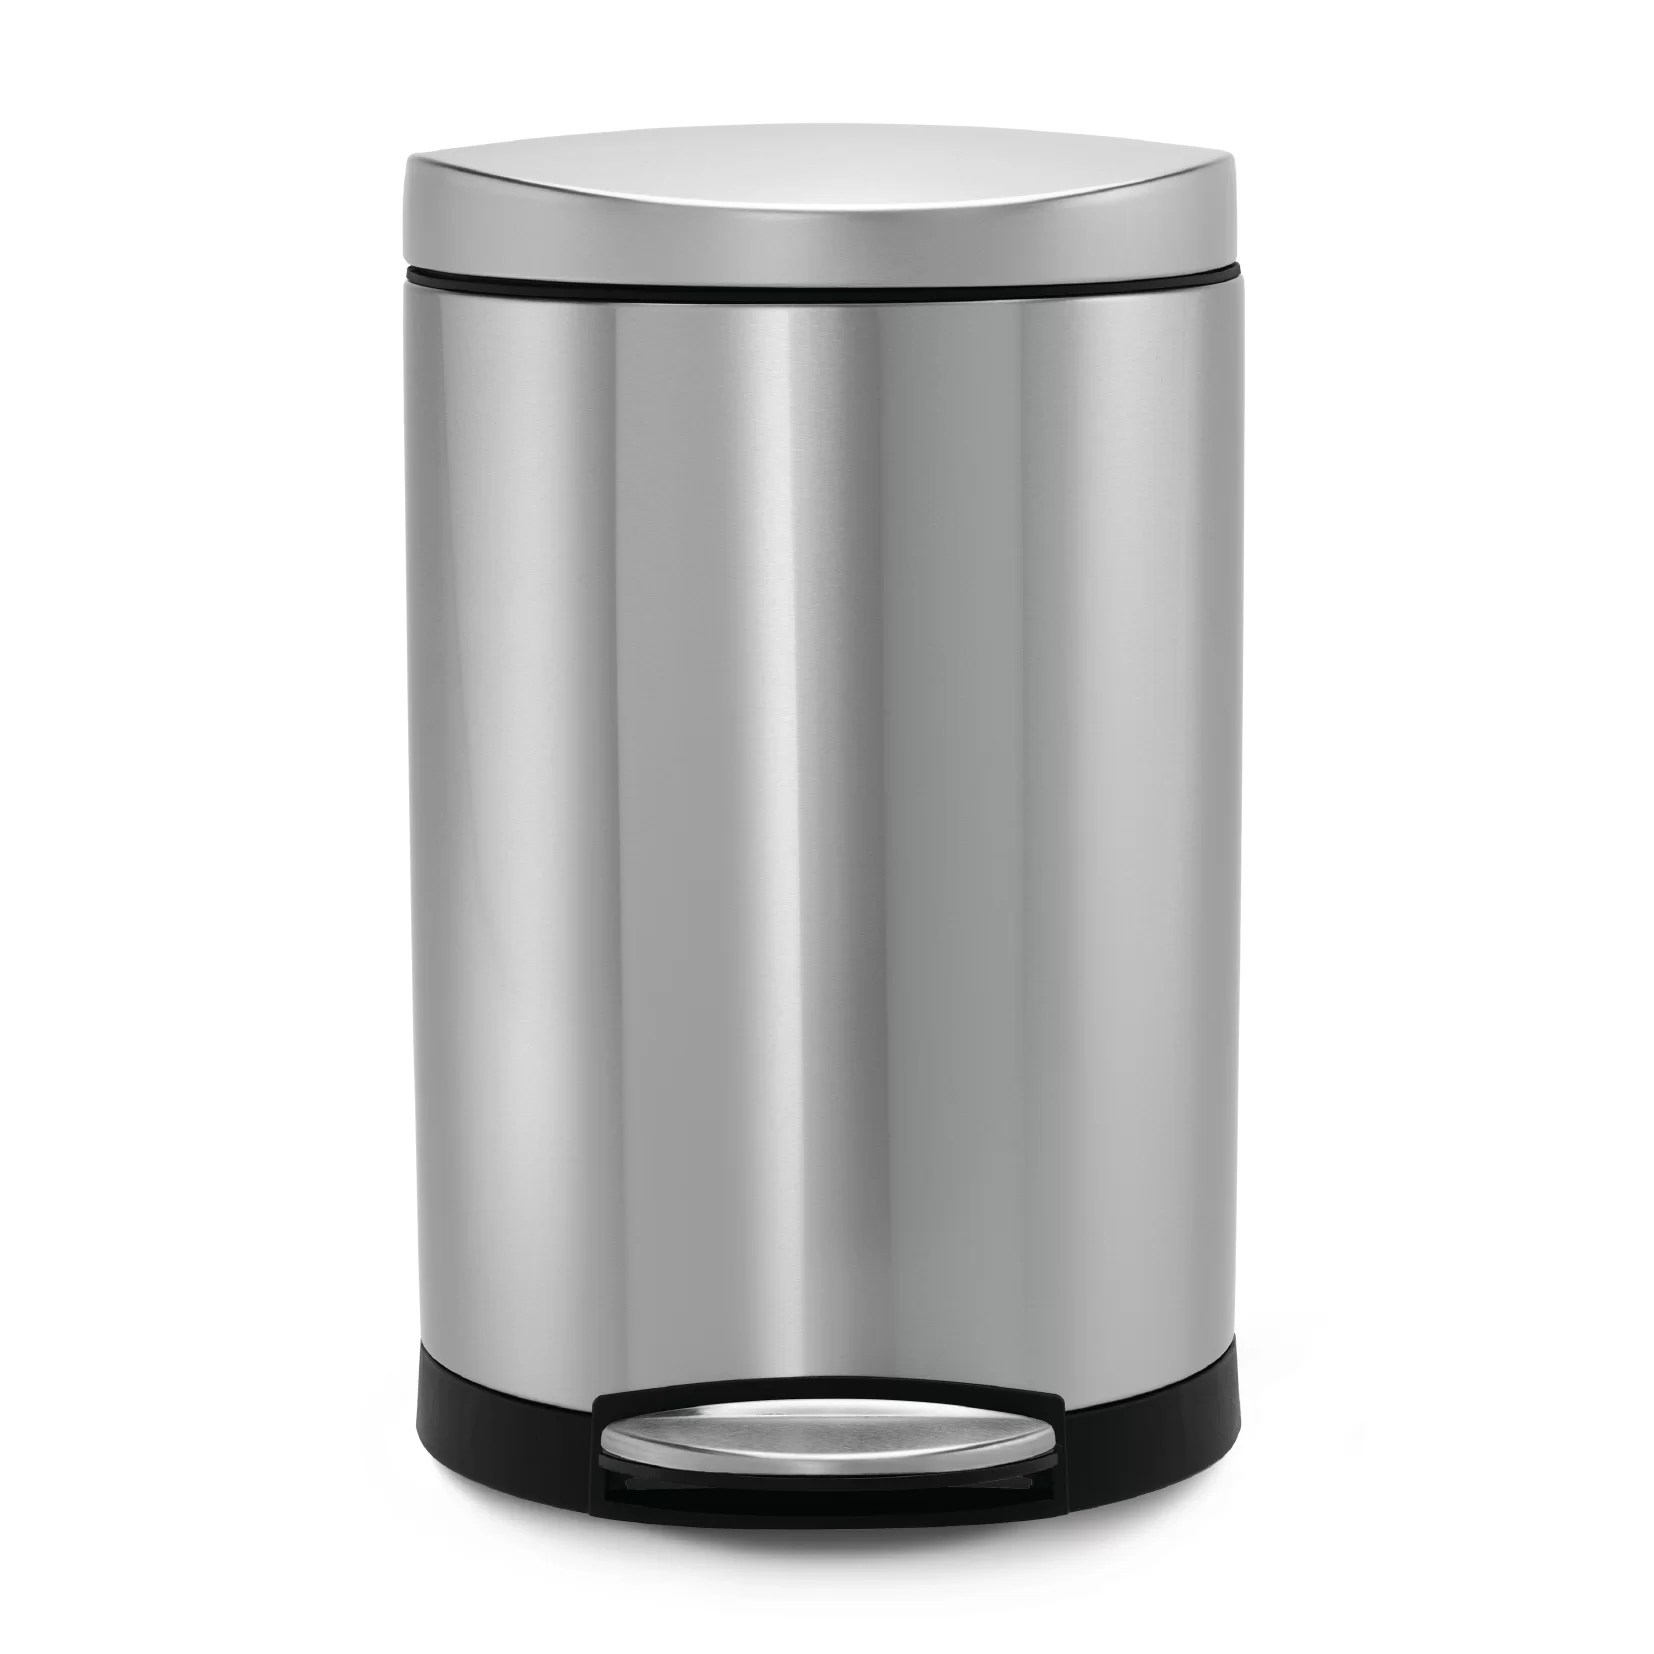 Rvs Vuilnisbak Simplehuman 2 6 Gallon Step On Stainless Steel Trash Can